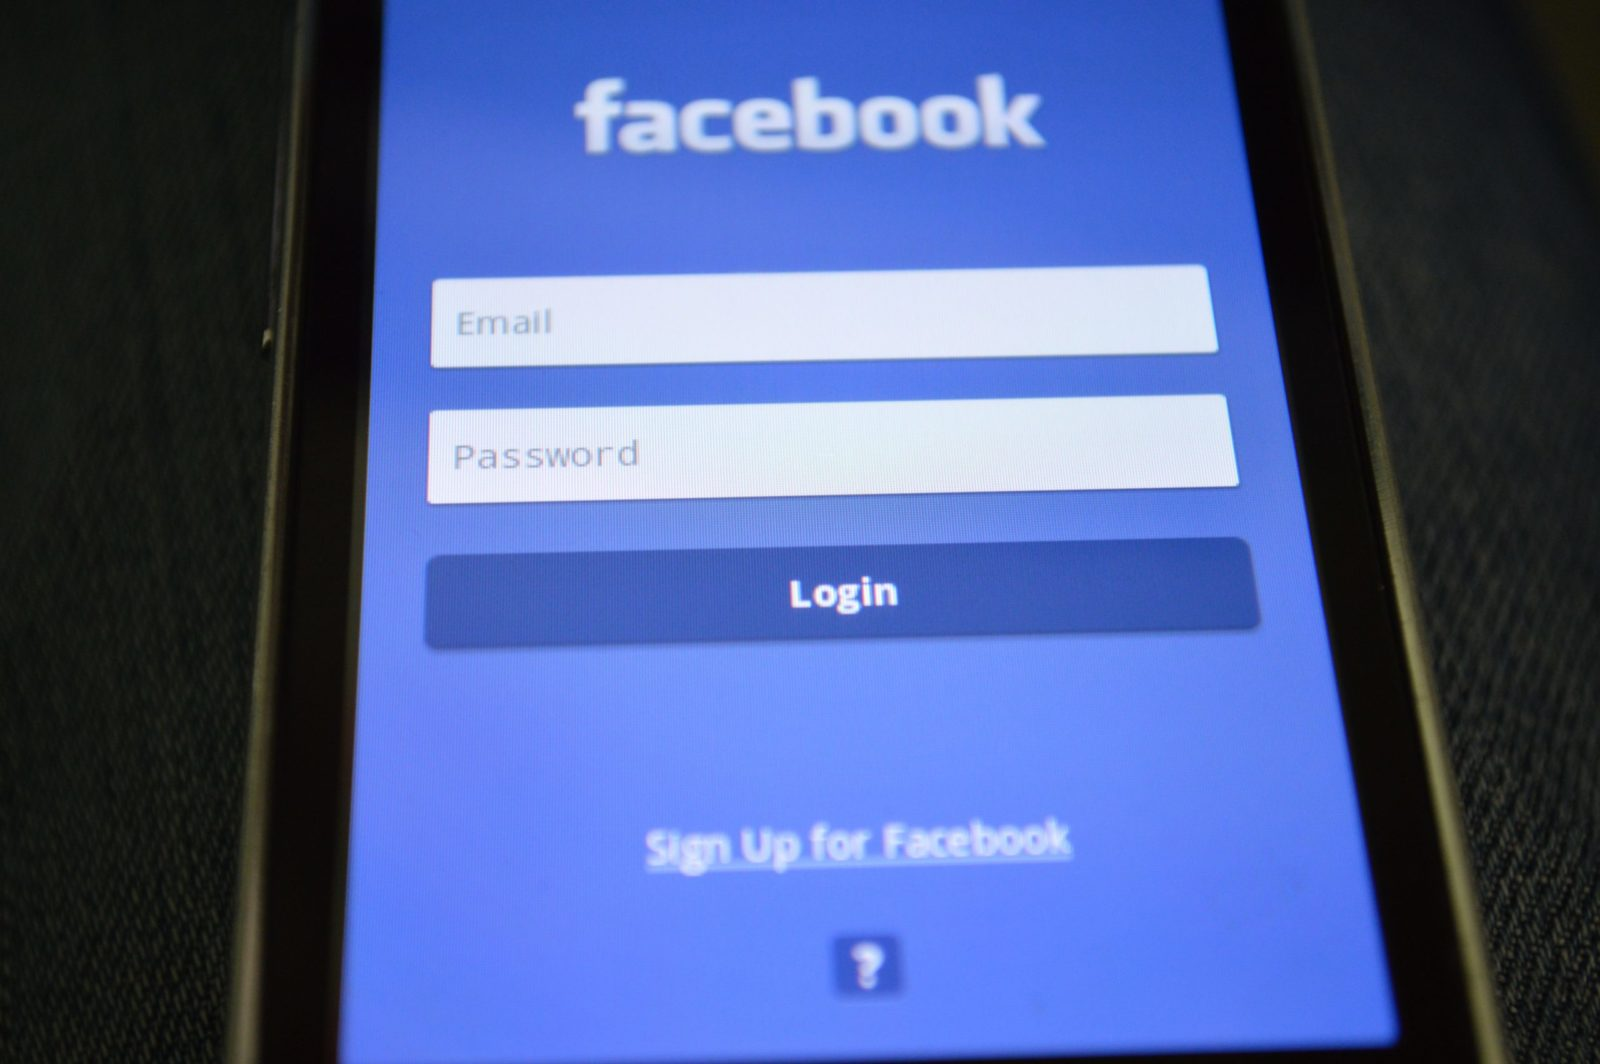 Facebook Lite Login or Facebook Lite Sign Up